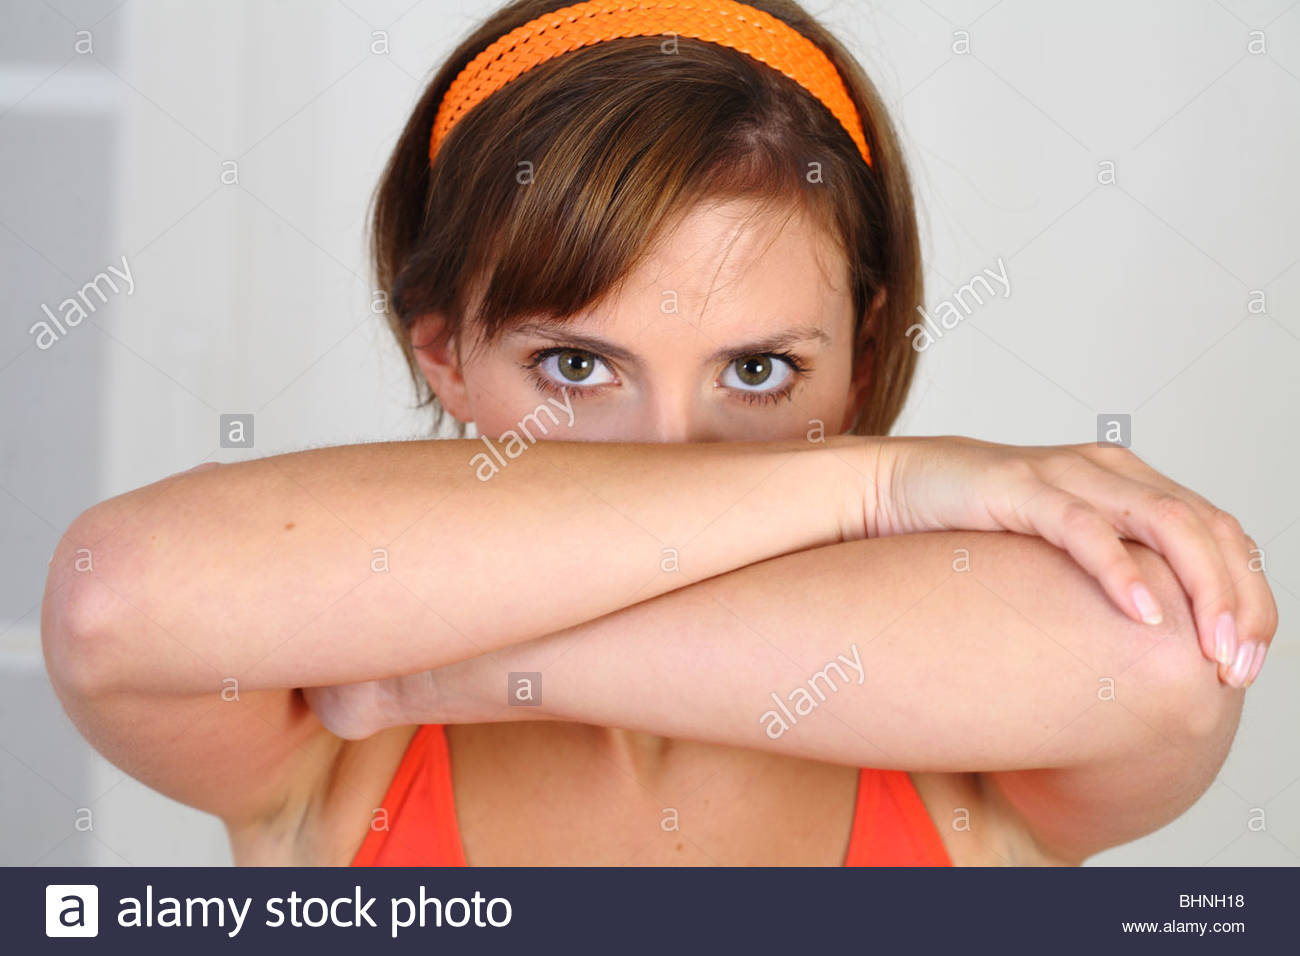 portrait brunette woman covering her face with arms Stock Photo